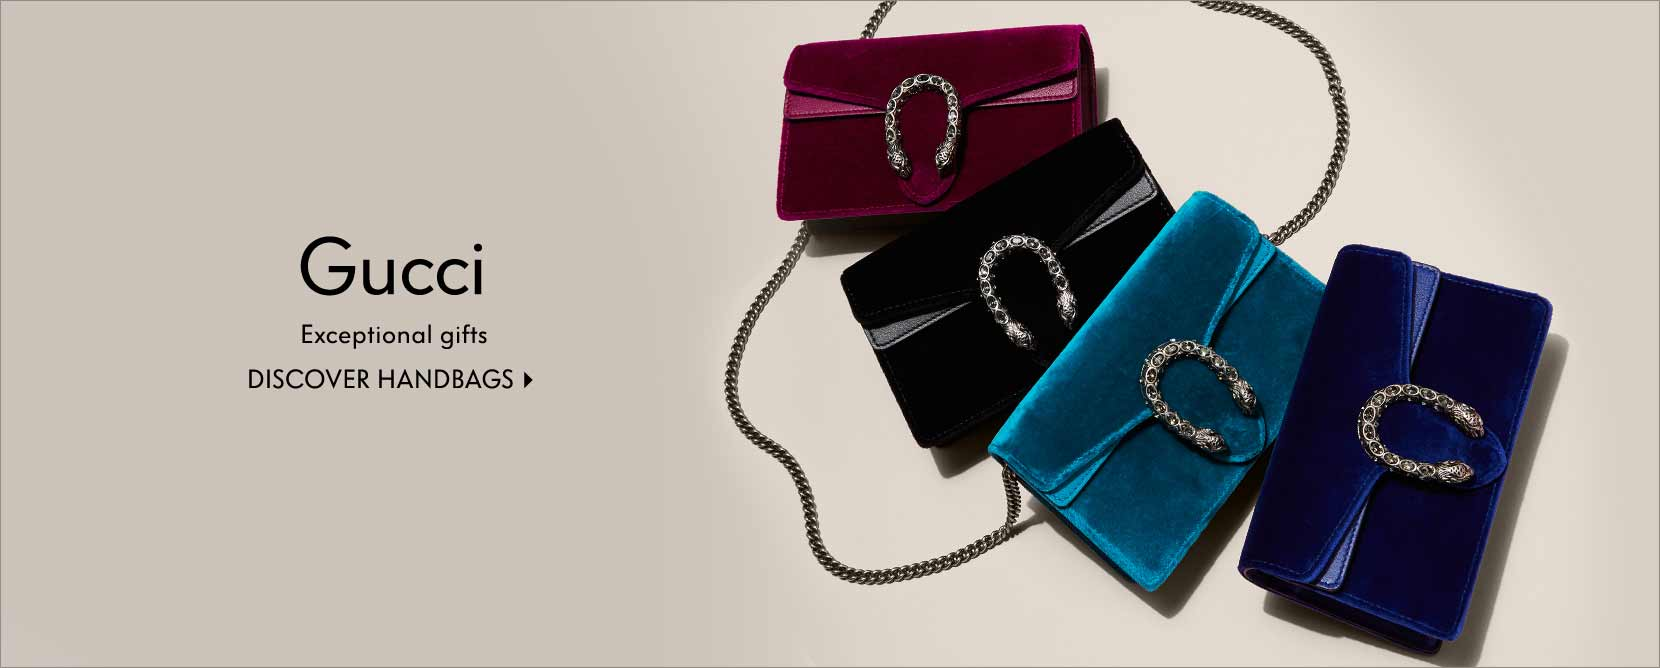 Gucci exceptional gifts